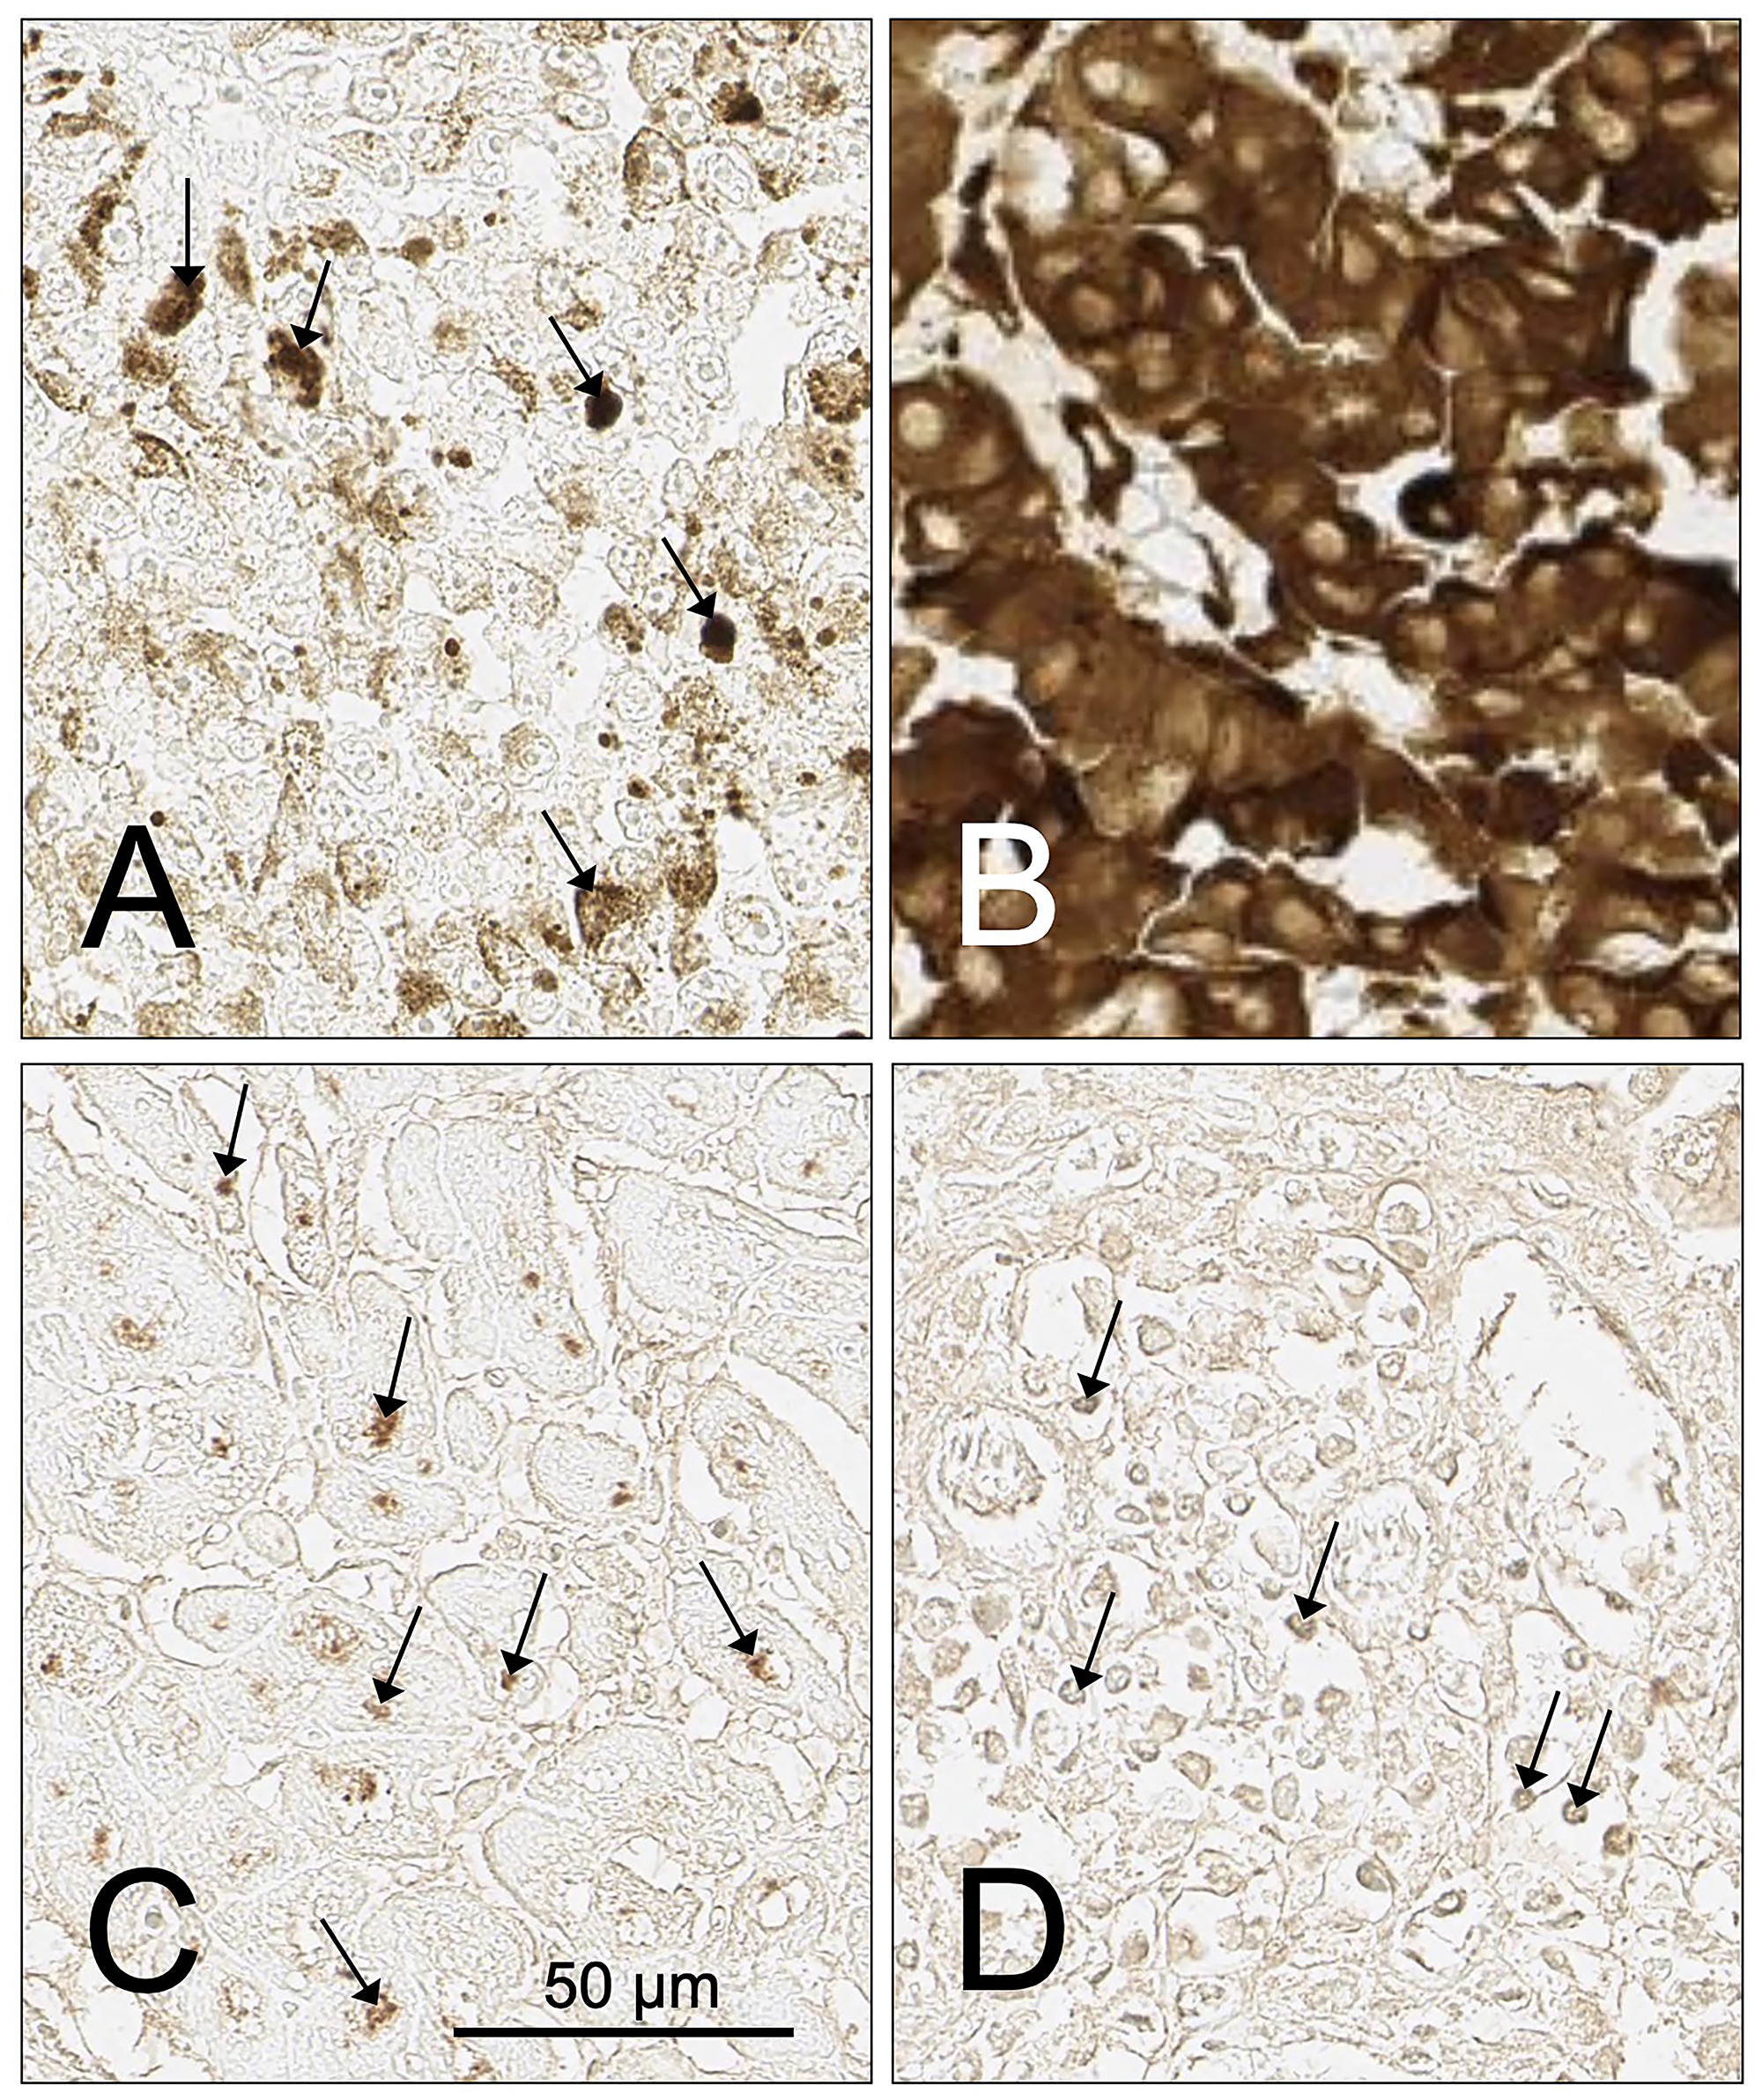 Examples of tumor cases with infiltrating lymphocytes or cells containing pigment that impact or prevent the assessment of SH7129 binding using DAB as a substrate.